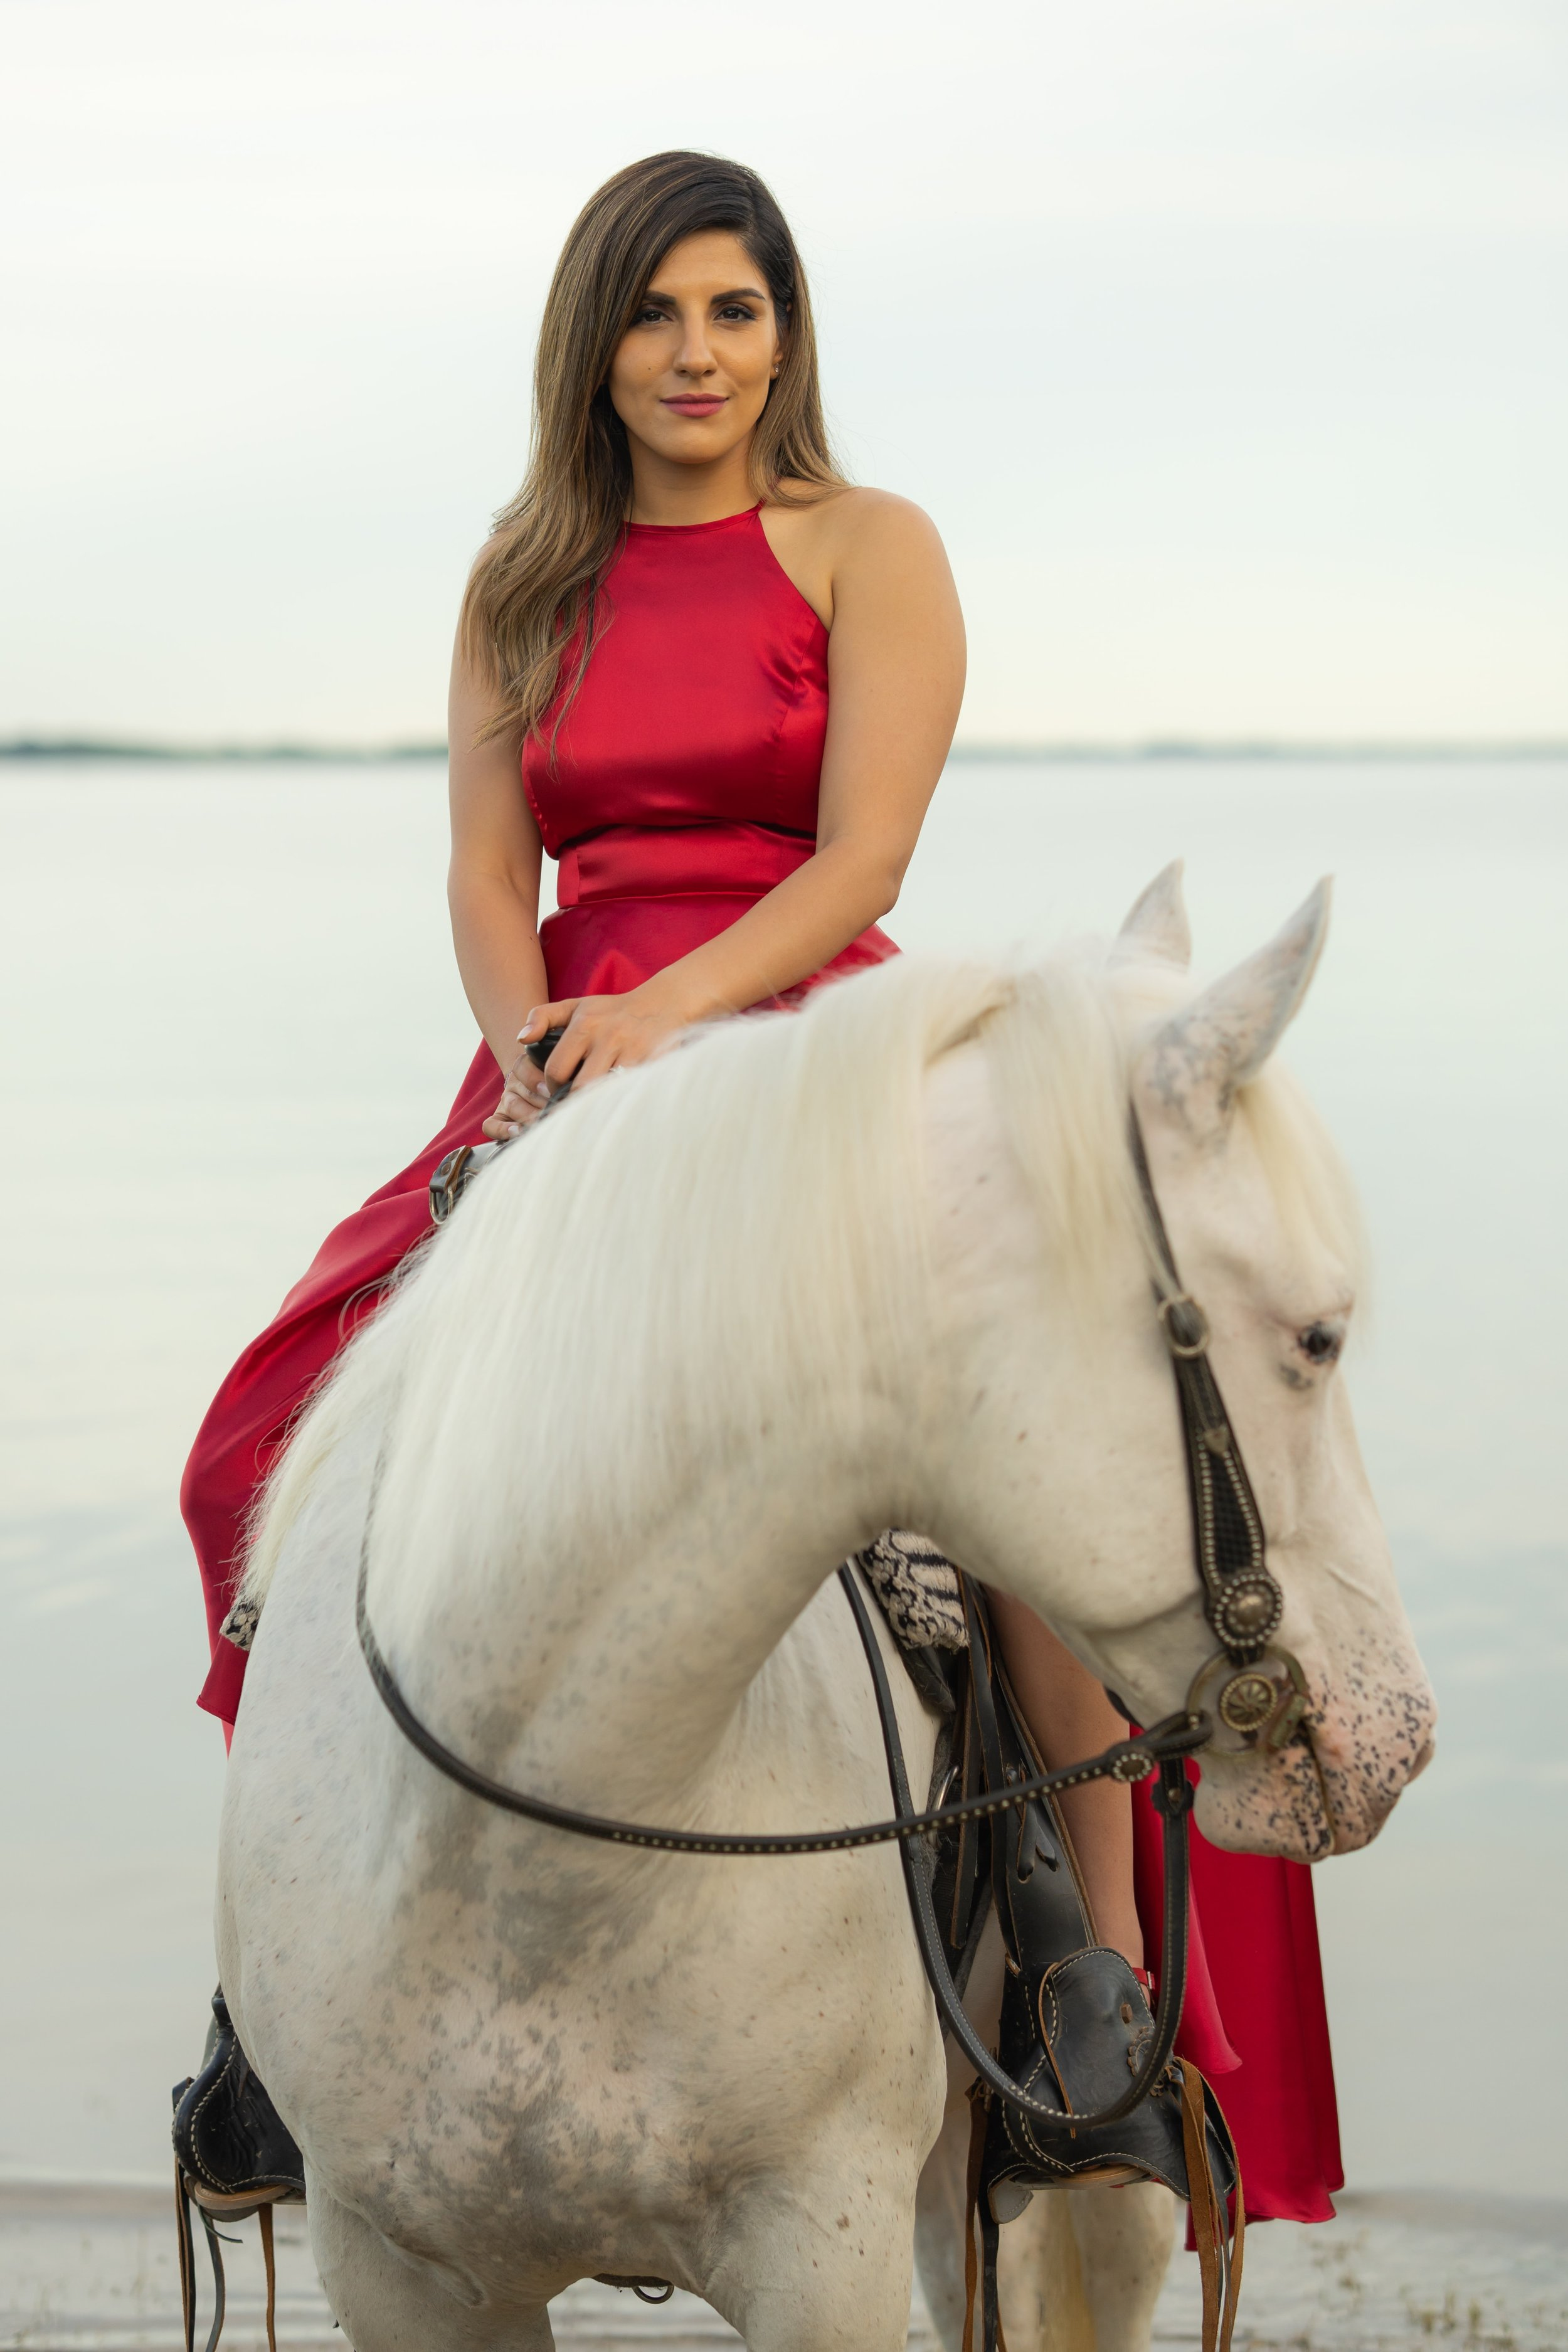 Engagement Photography Services Lucas, TX - Woman in red dress sitting upon a white horse.